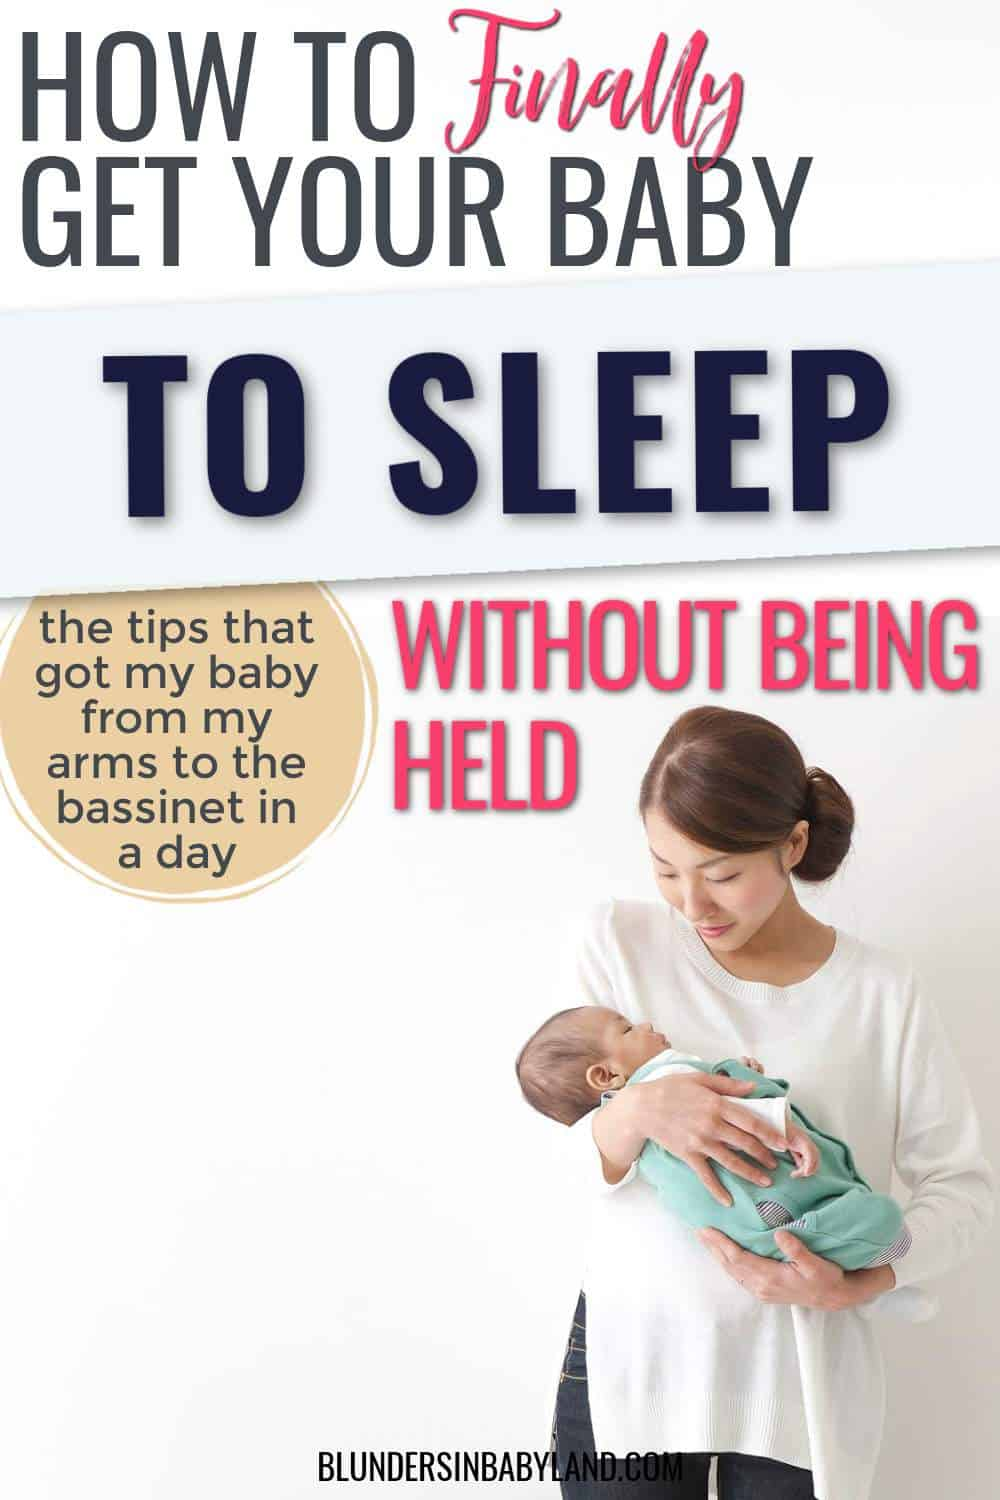 Baby Only Sleep in My Arms - How to Get Baby to Sleep Without Being Held - Baby only sleeps when held